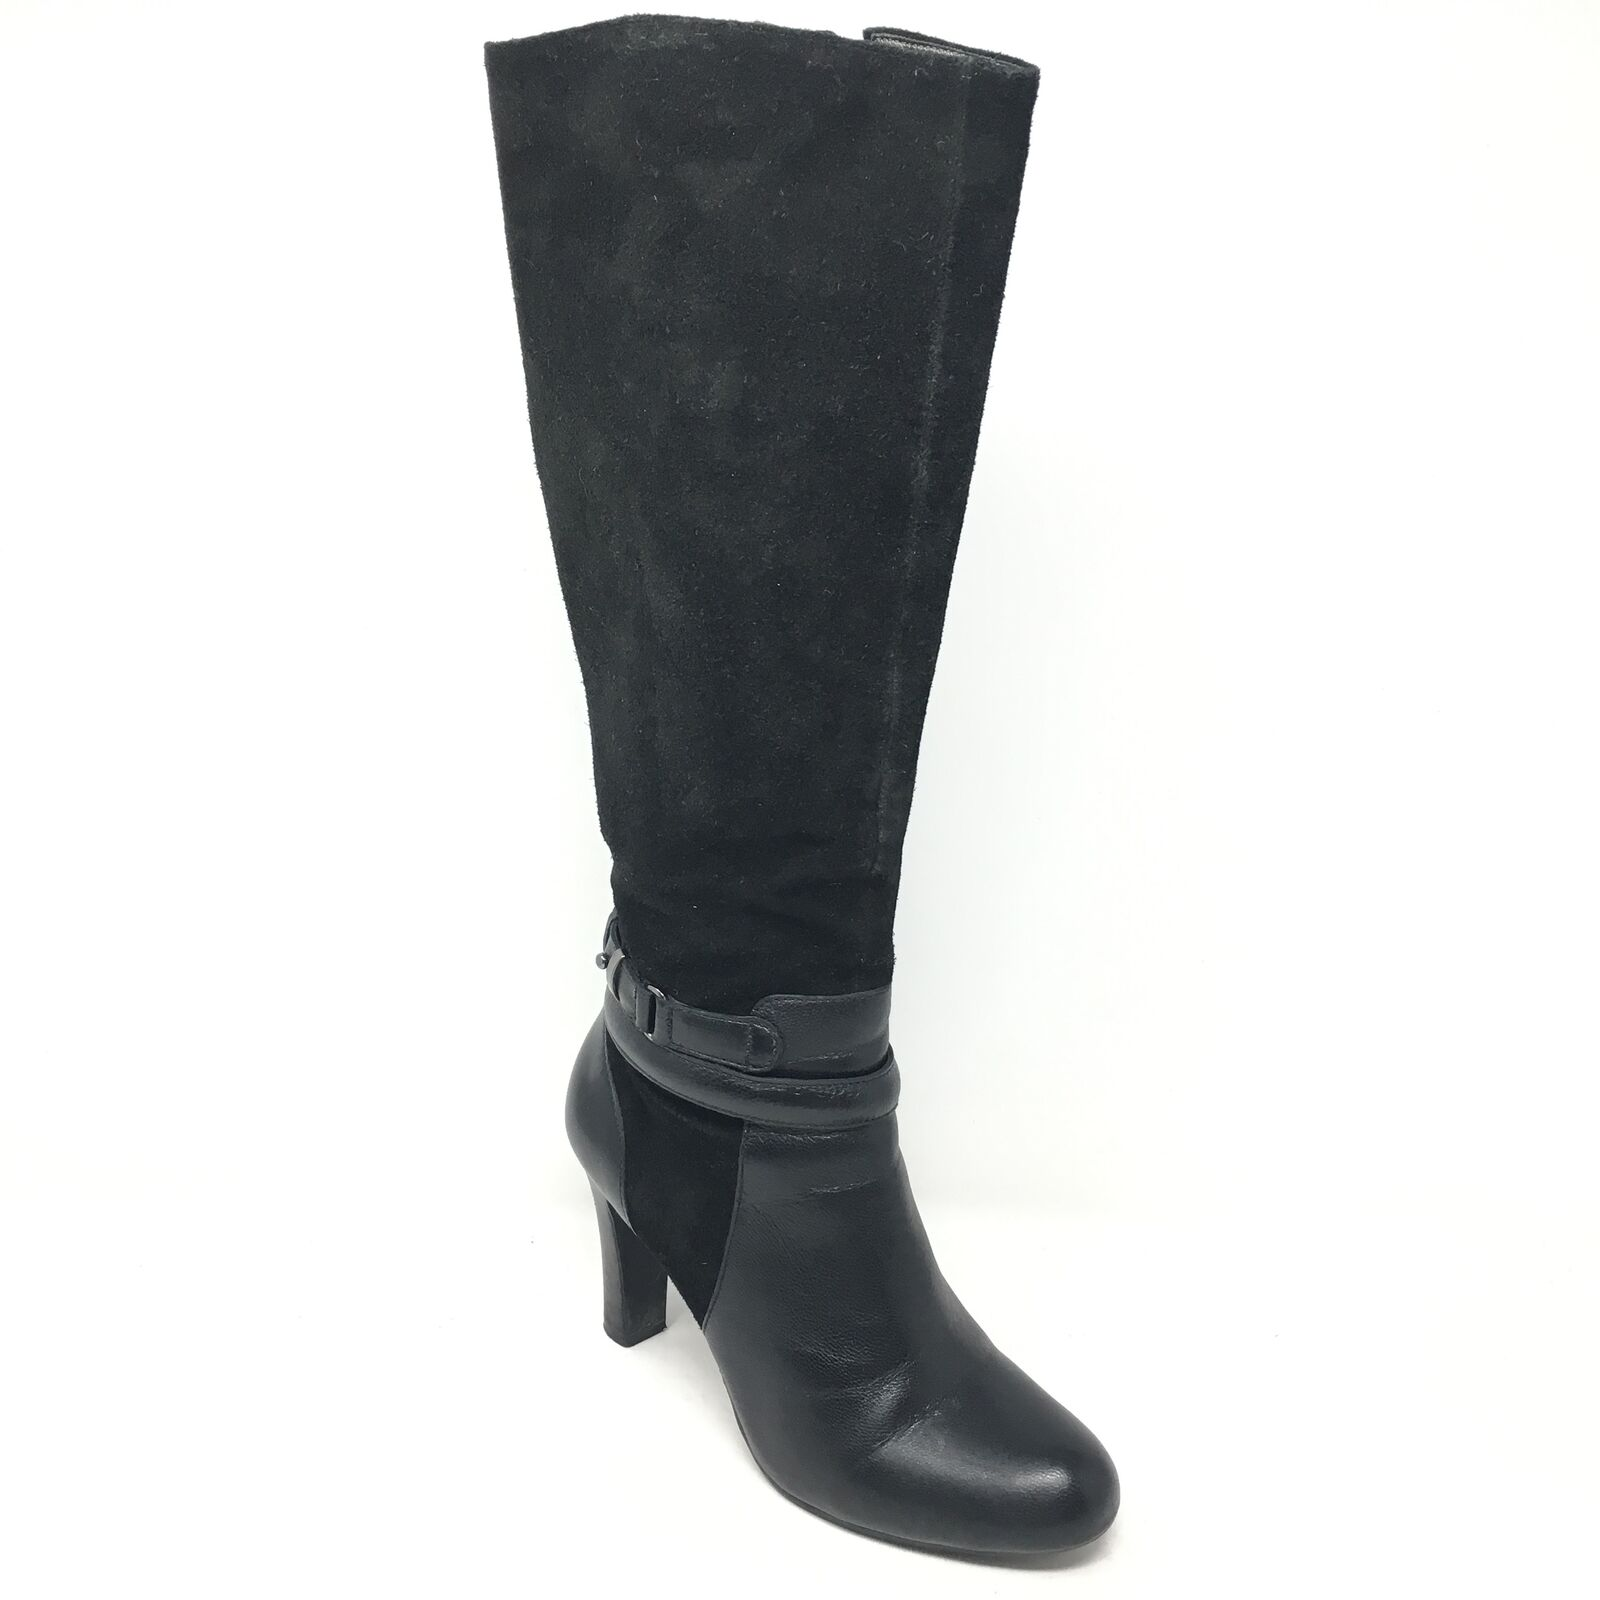 Women's Talbots Knee High Boots shoes Size 5.5B Black Suede Zip Up Stretch C6